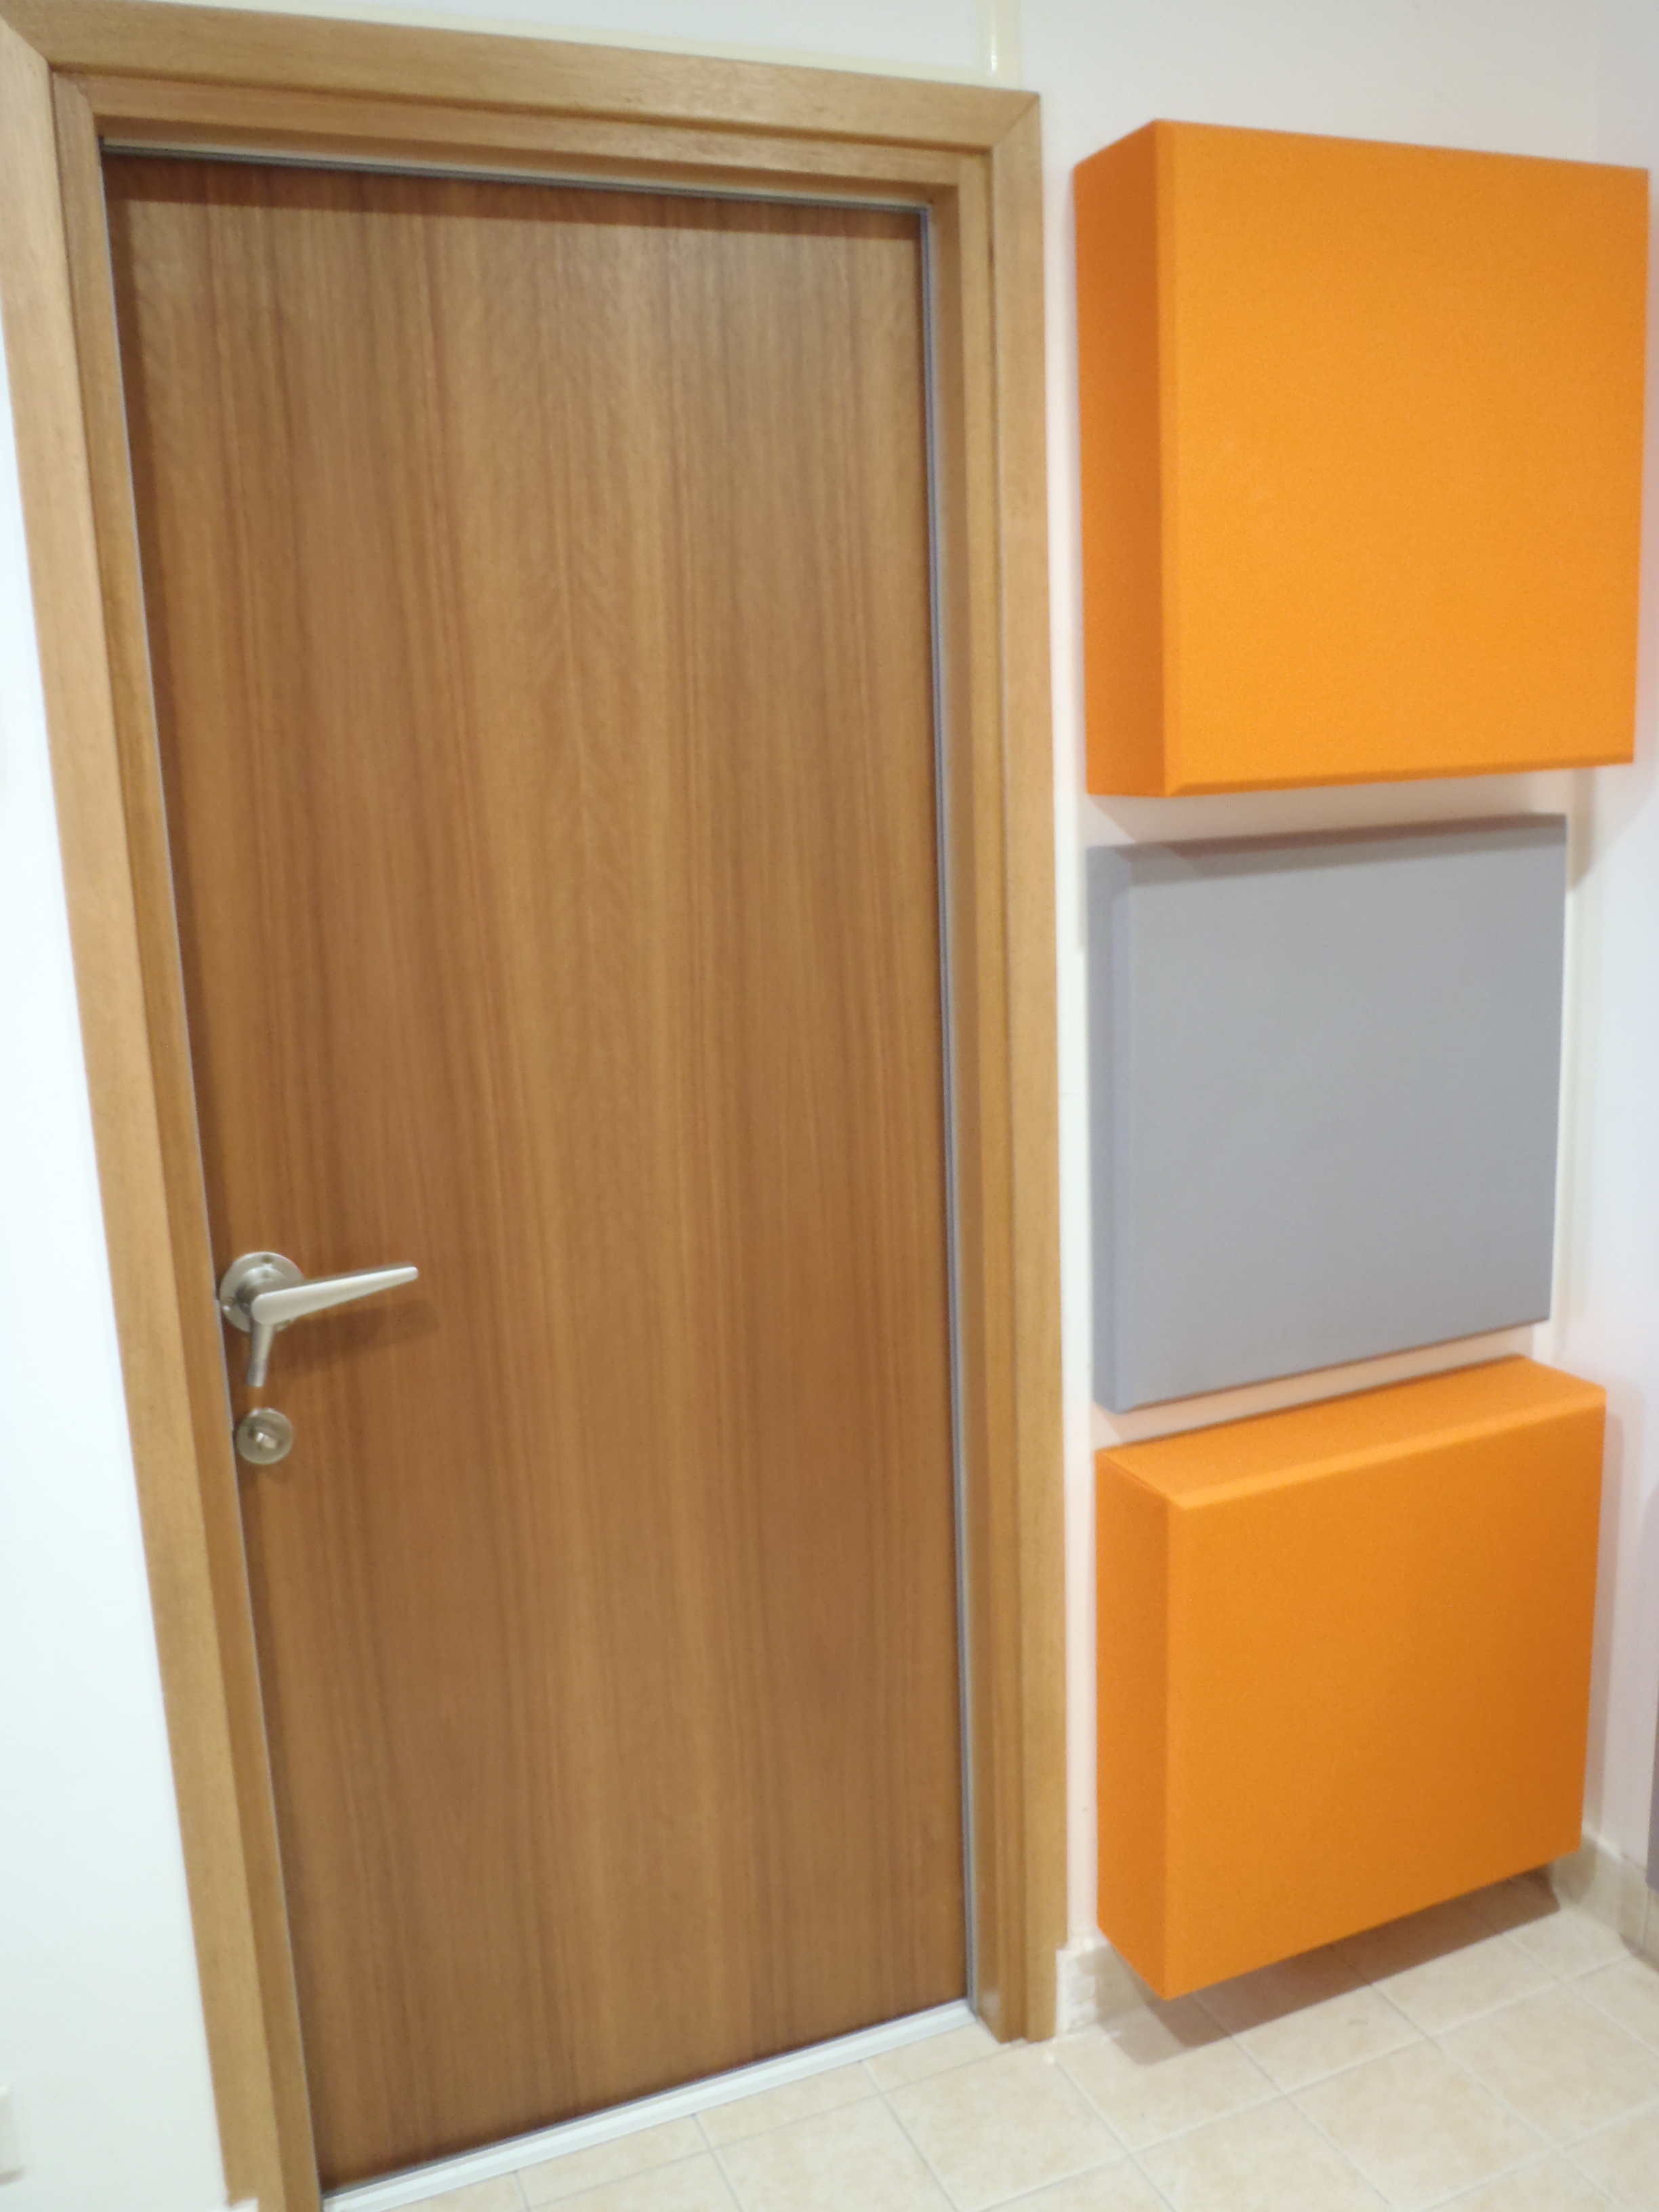 Best soundproof interior door